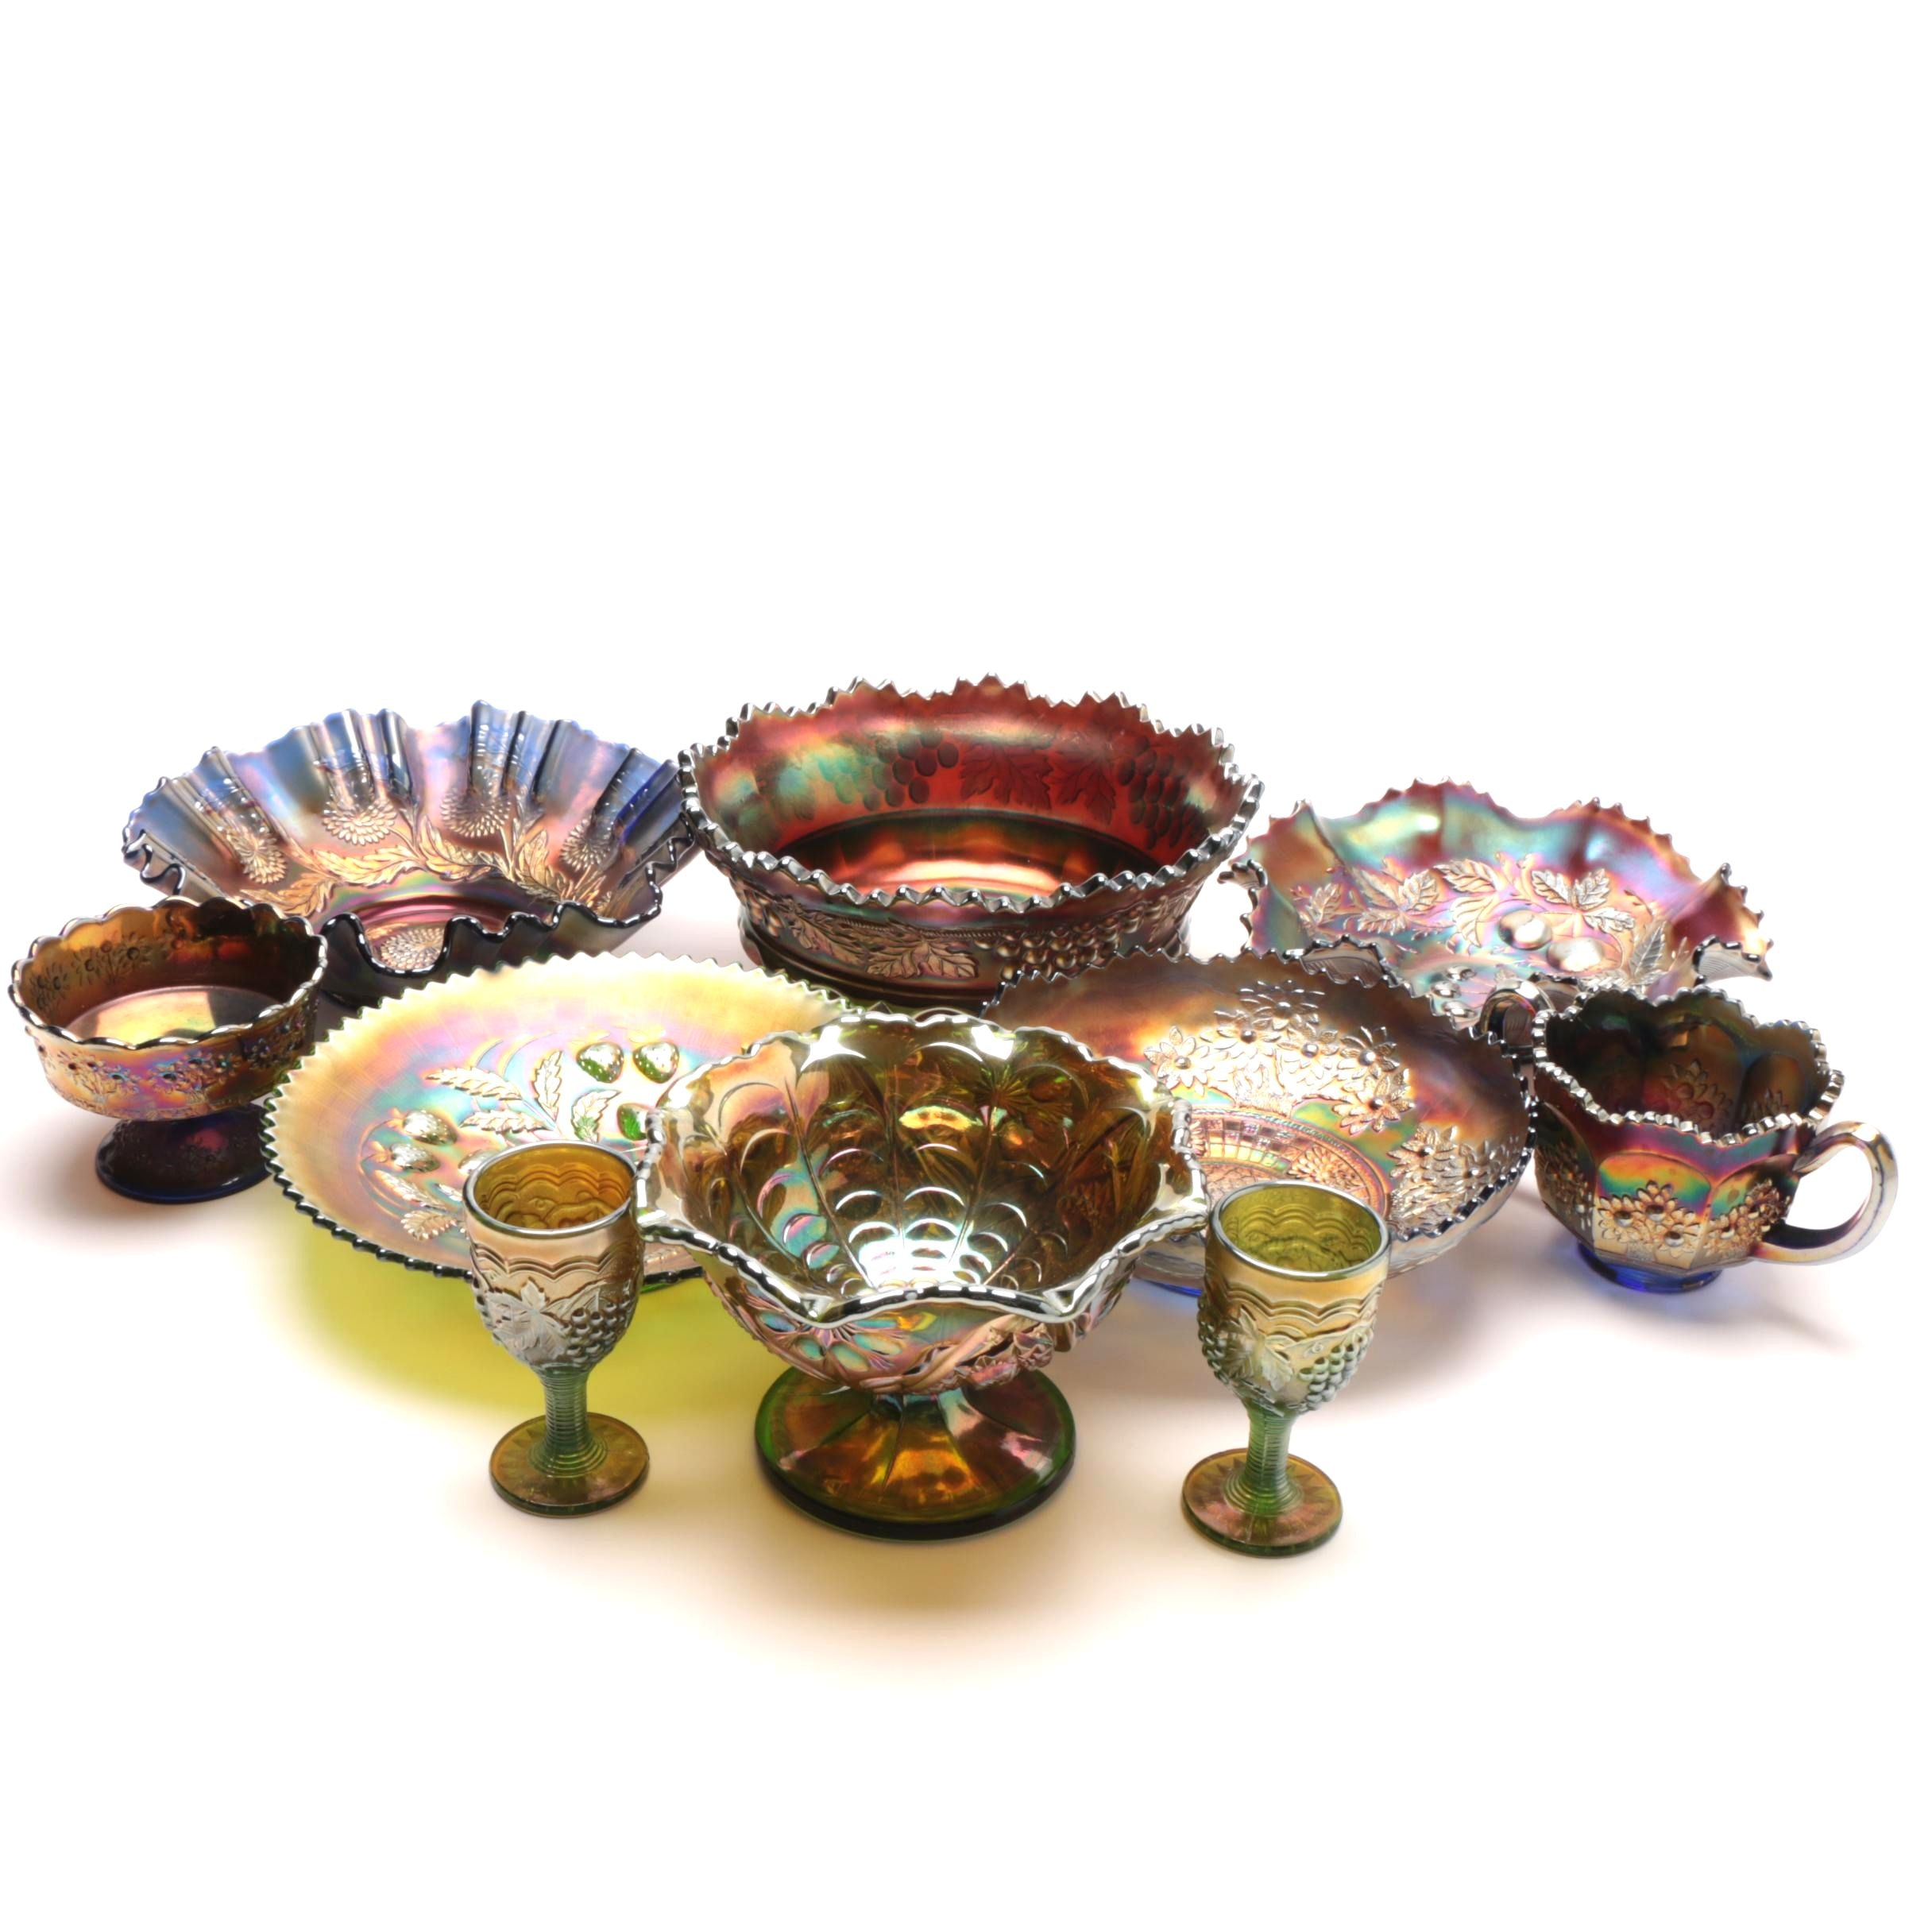 Group of Carnival Glass Serveware including Imperial Glass and Northwood